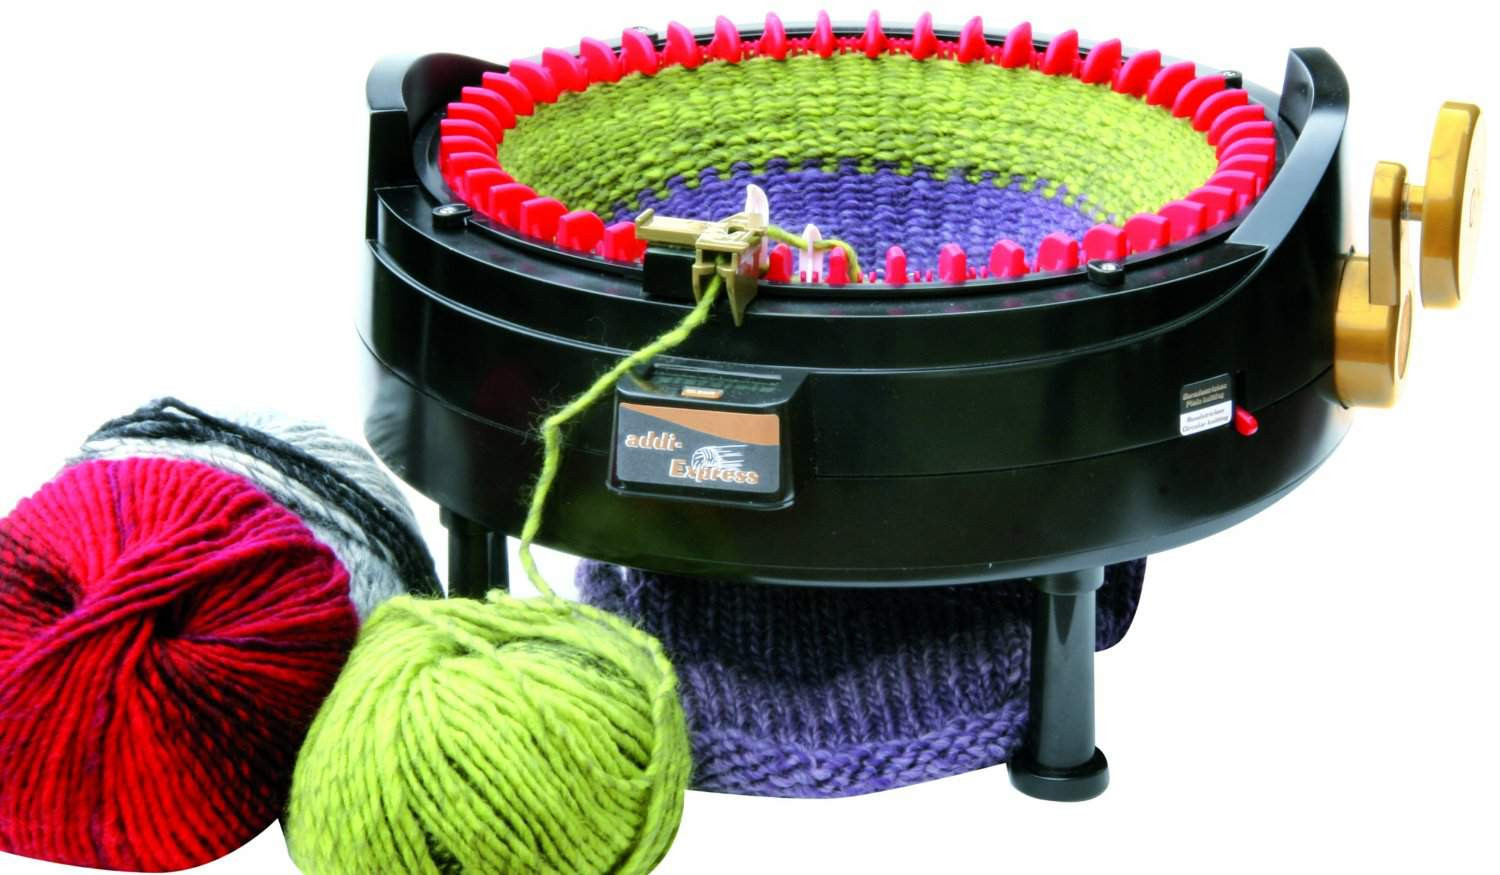 Addi Knitting Machine Beautiful 101 Romantic Gifts for Your Wife the Ultimate List Of Marvelous 46 Photos Addi Knitting Machine